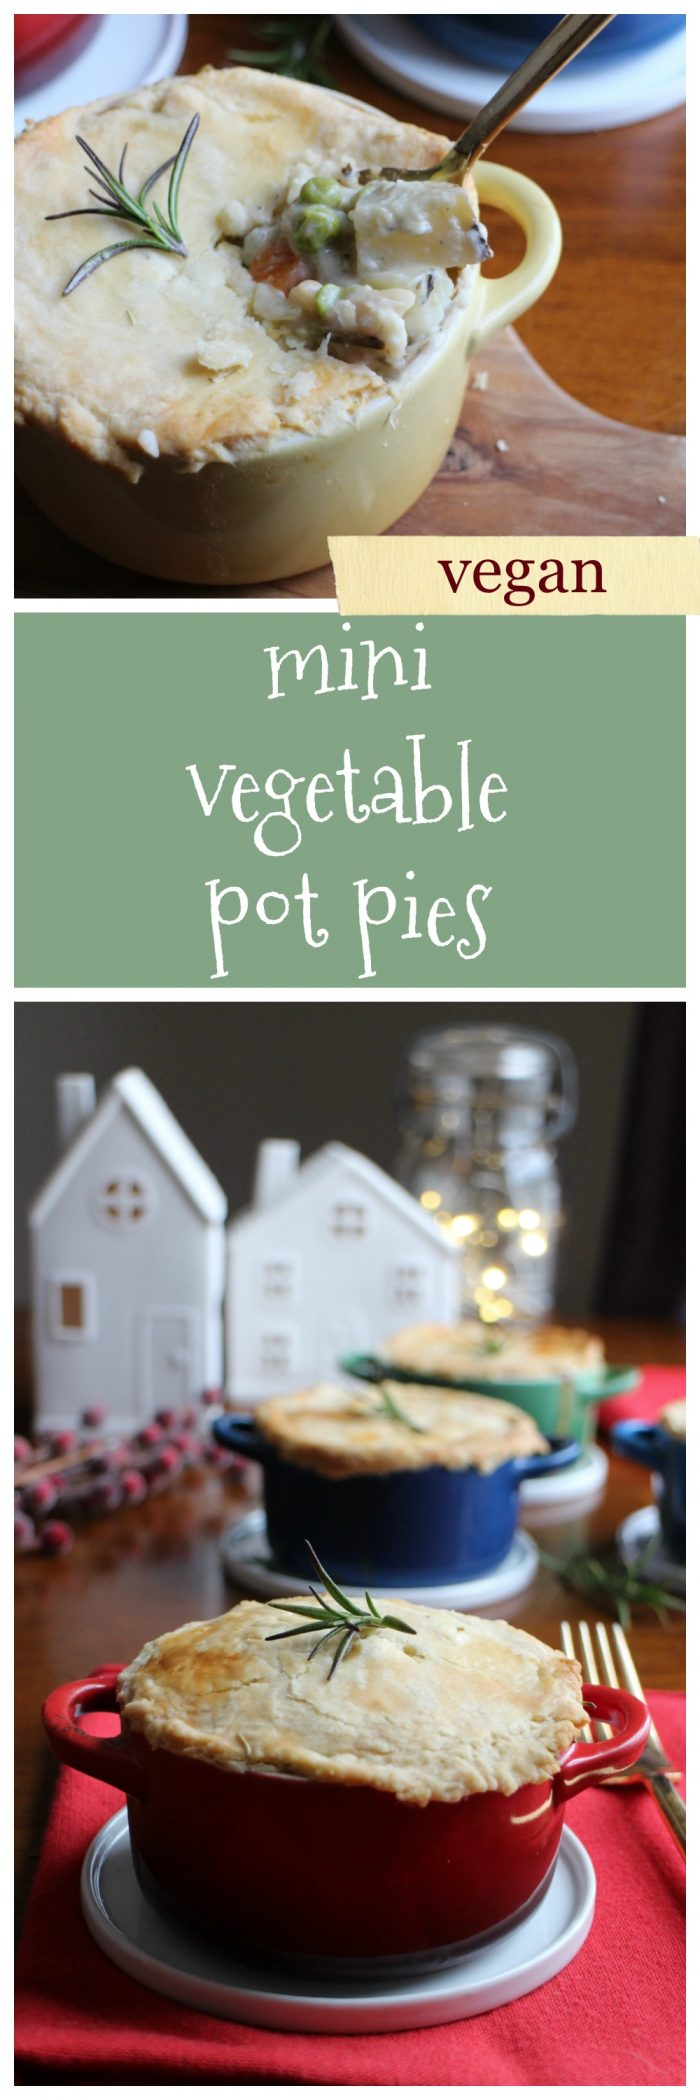 Mini vegetable pot pie: The perfect vegan main course for your holiday gathering or dinner party. They are made with chickpeas, vegetables aplenty, and cashew cream. On top, a flaky pie crust using @Bob's Red Mill flour #BobsHolidayCheer | cadryskitchen.com